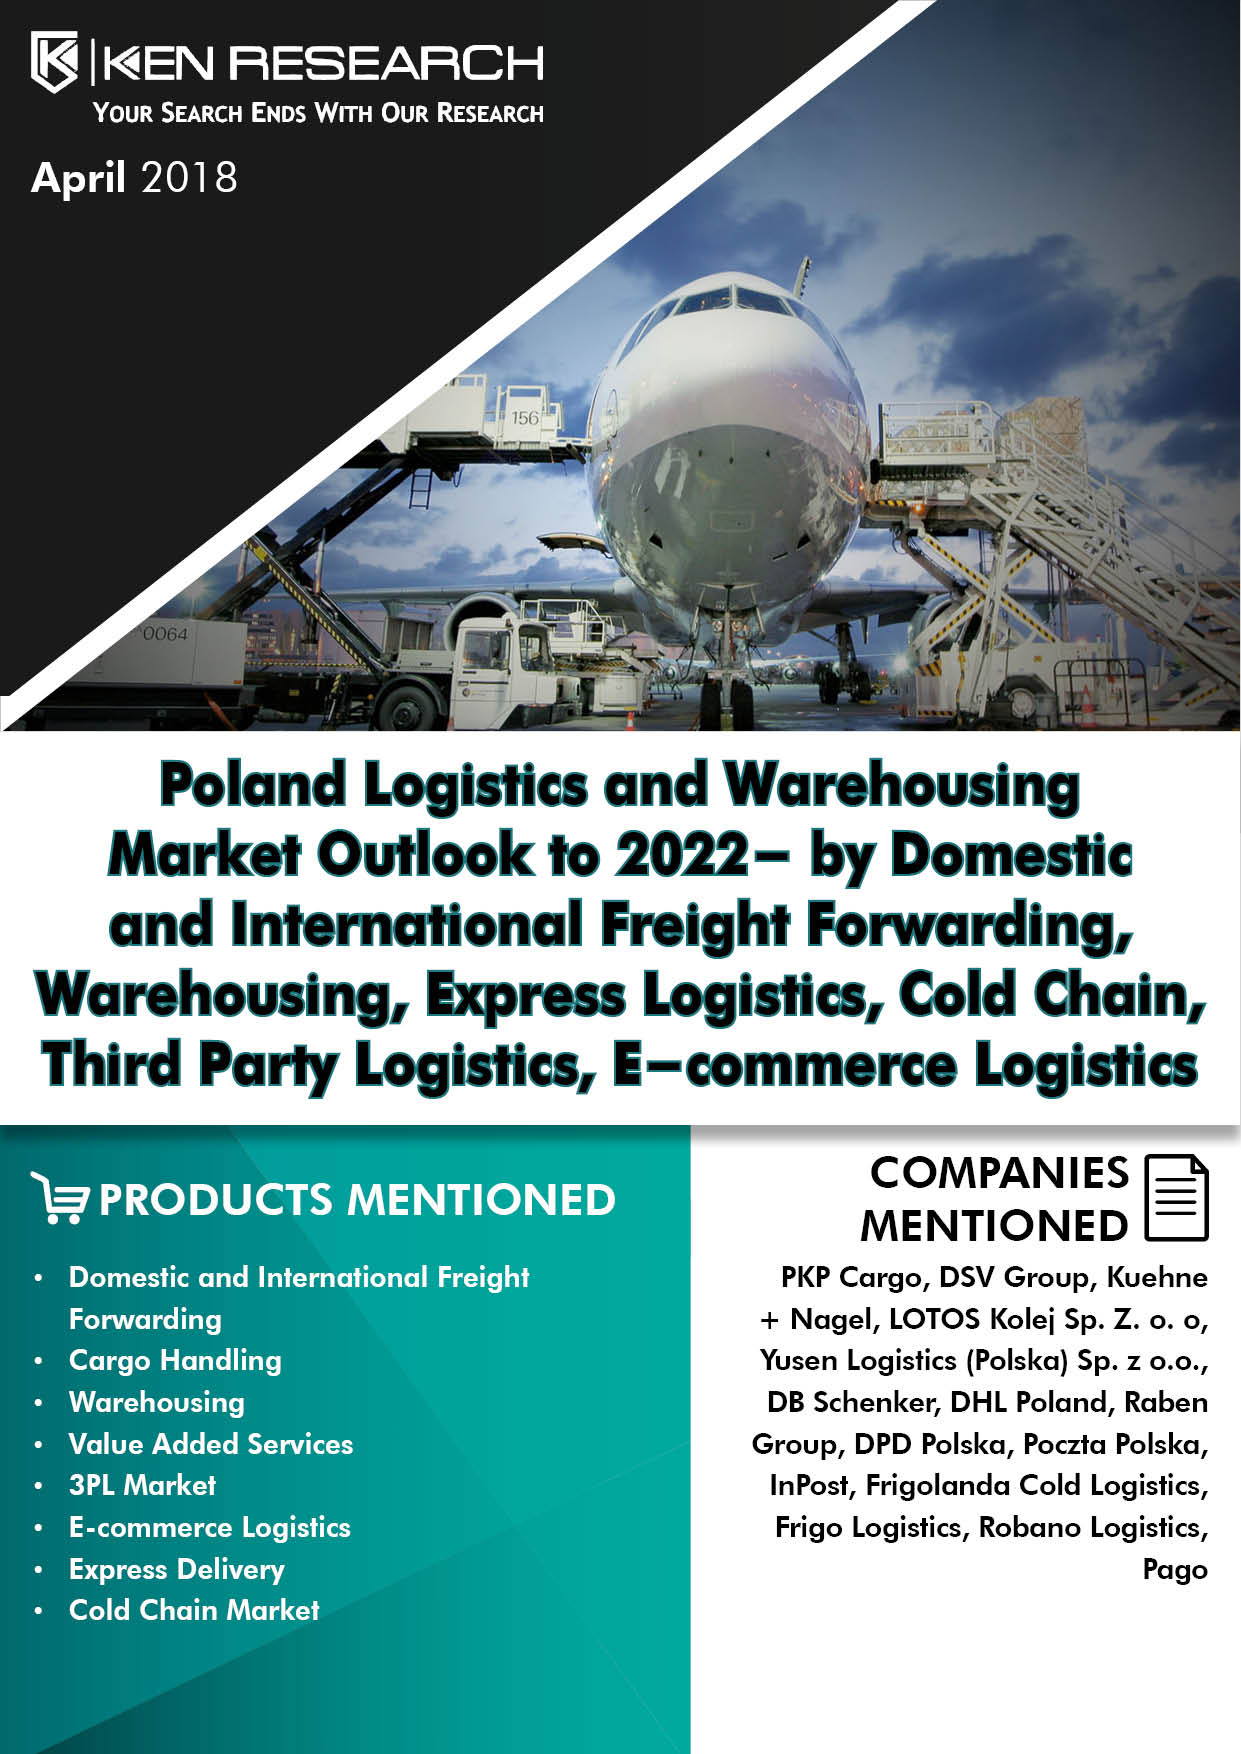 Poland-Logistics-and-Warehousing-Market-Cover-Page.jpg